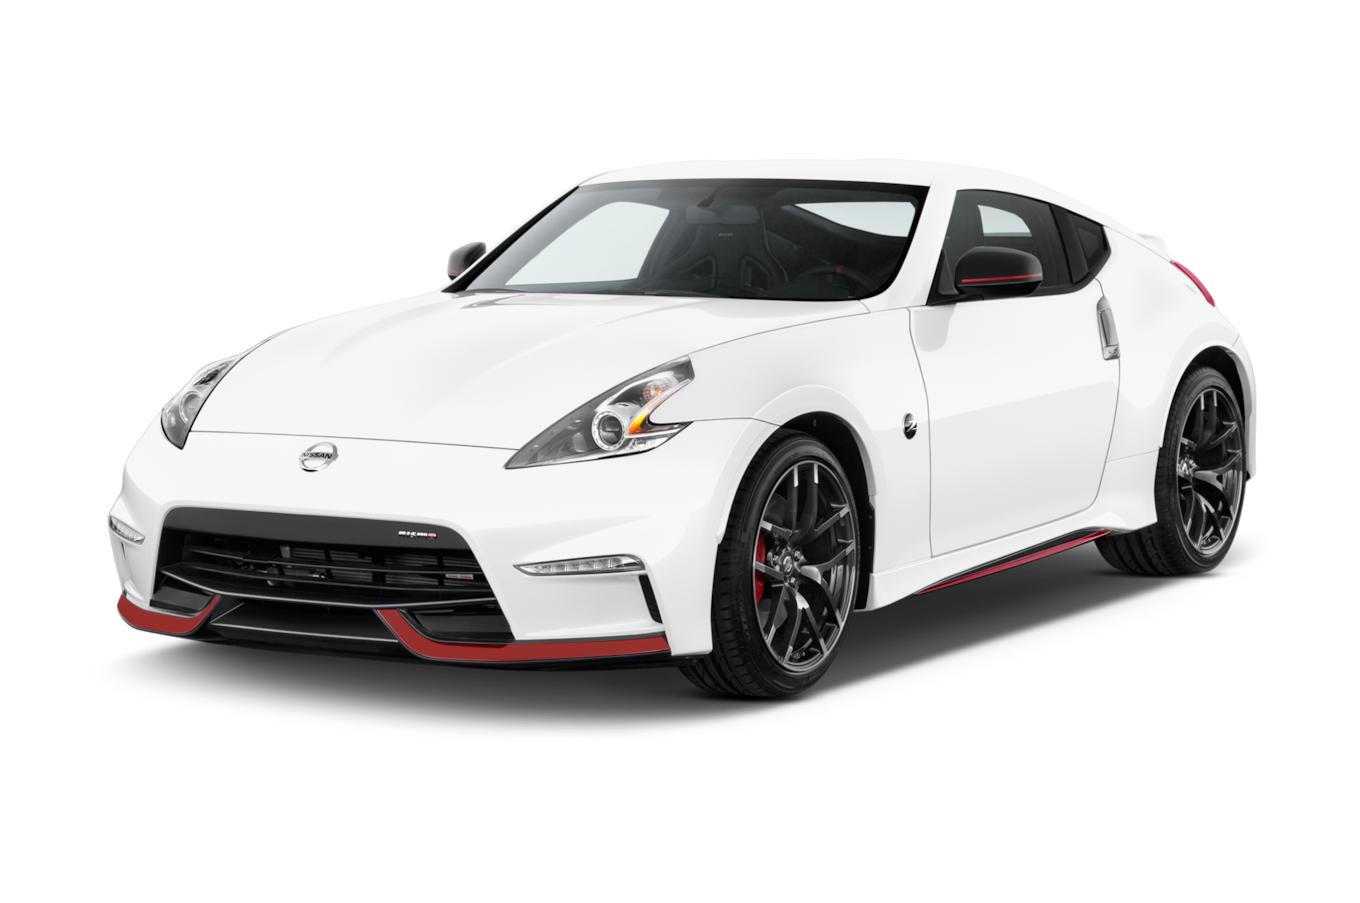 27 Great 2019 Nissan Z370 Review for 2019 Nissan Z370